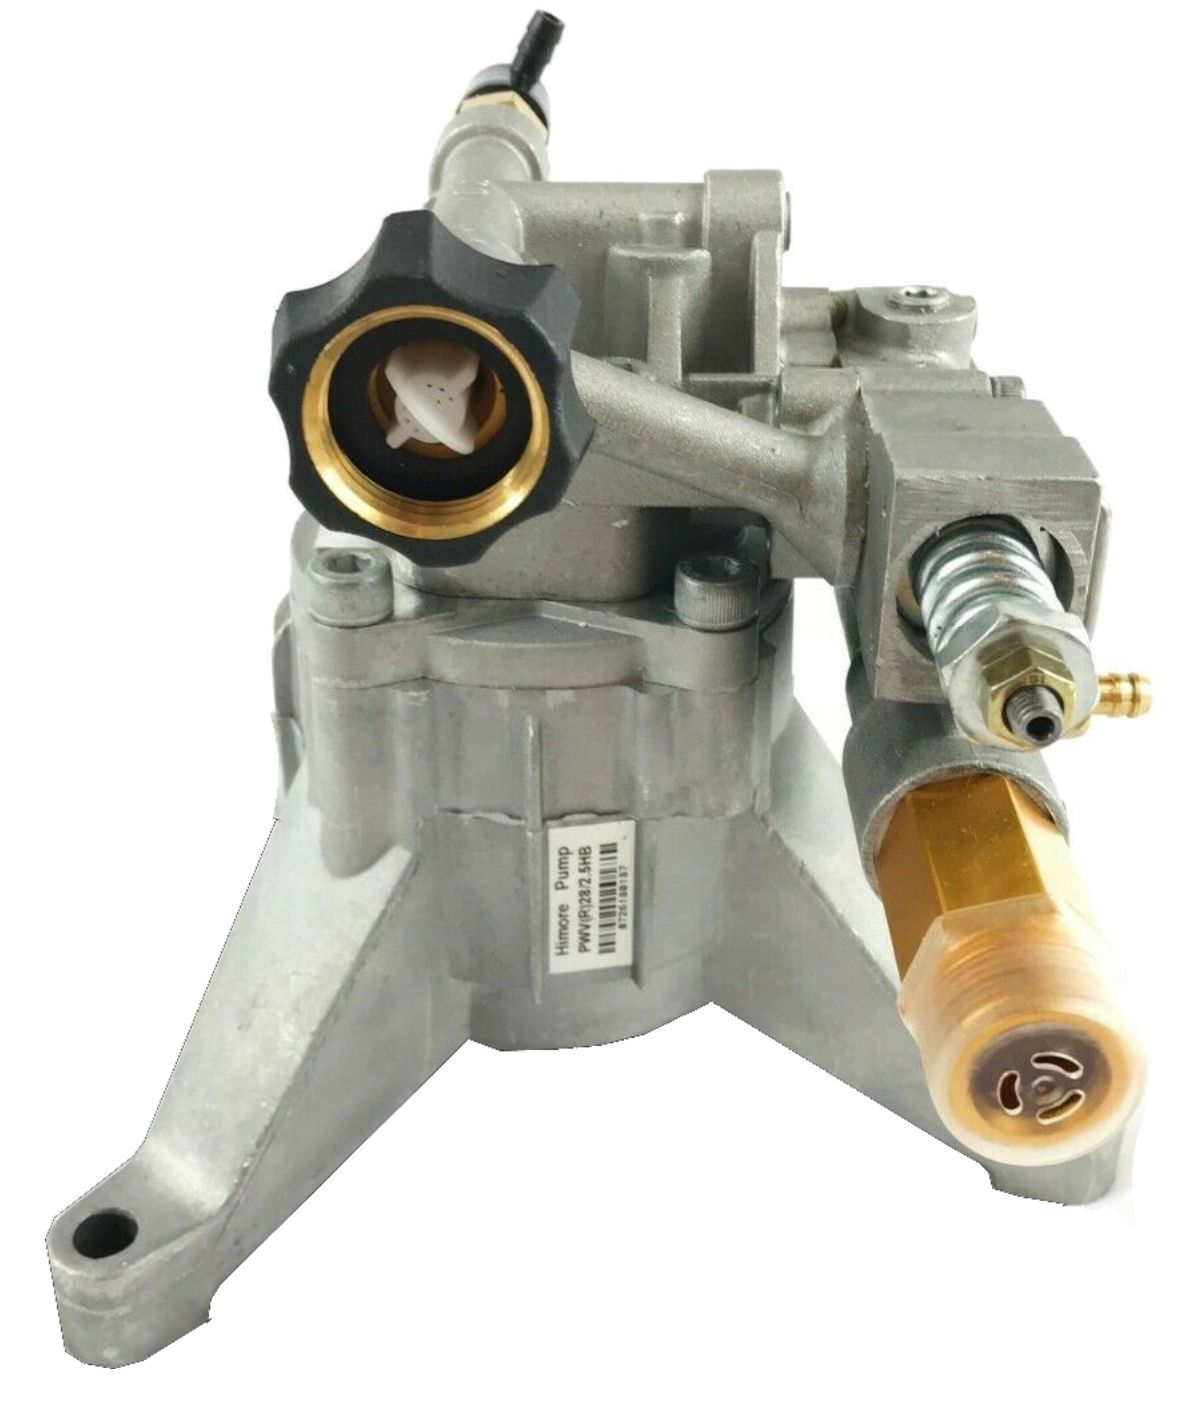 2700 PSI PRESSURE WASHER WATER PUMP fit Sears Craftsman 020431-0 020431-1 - AE-Power